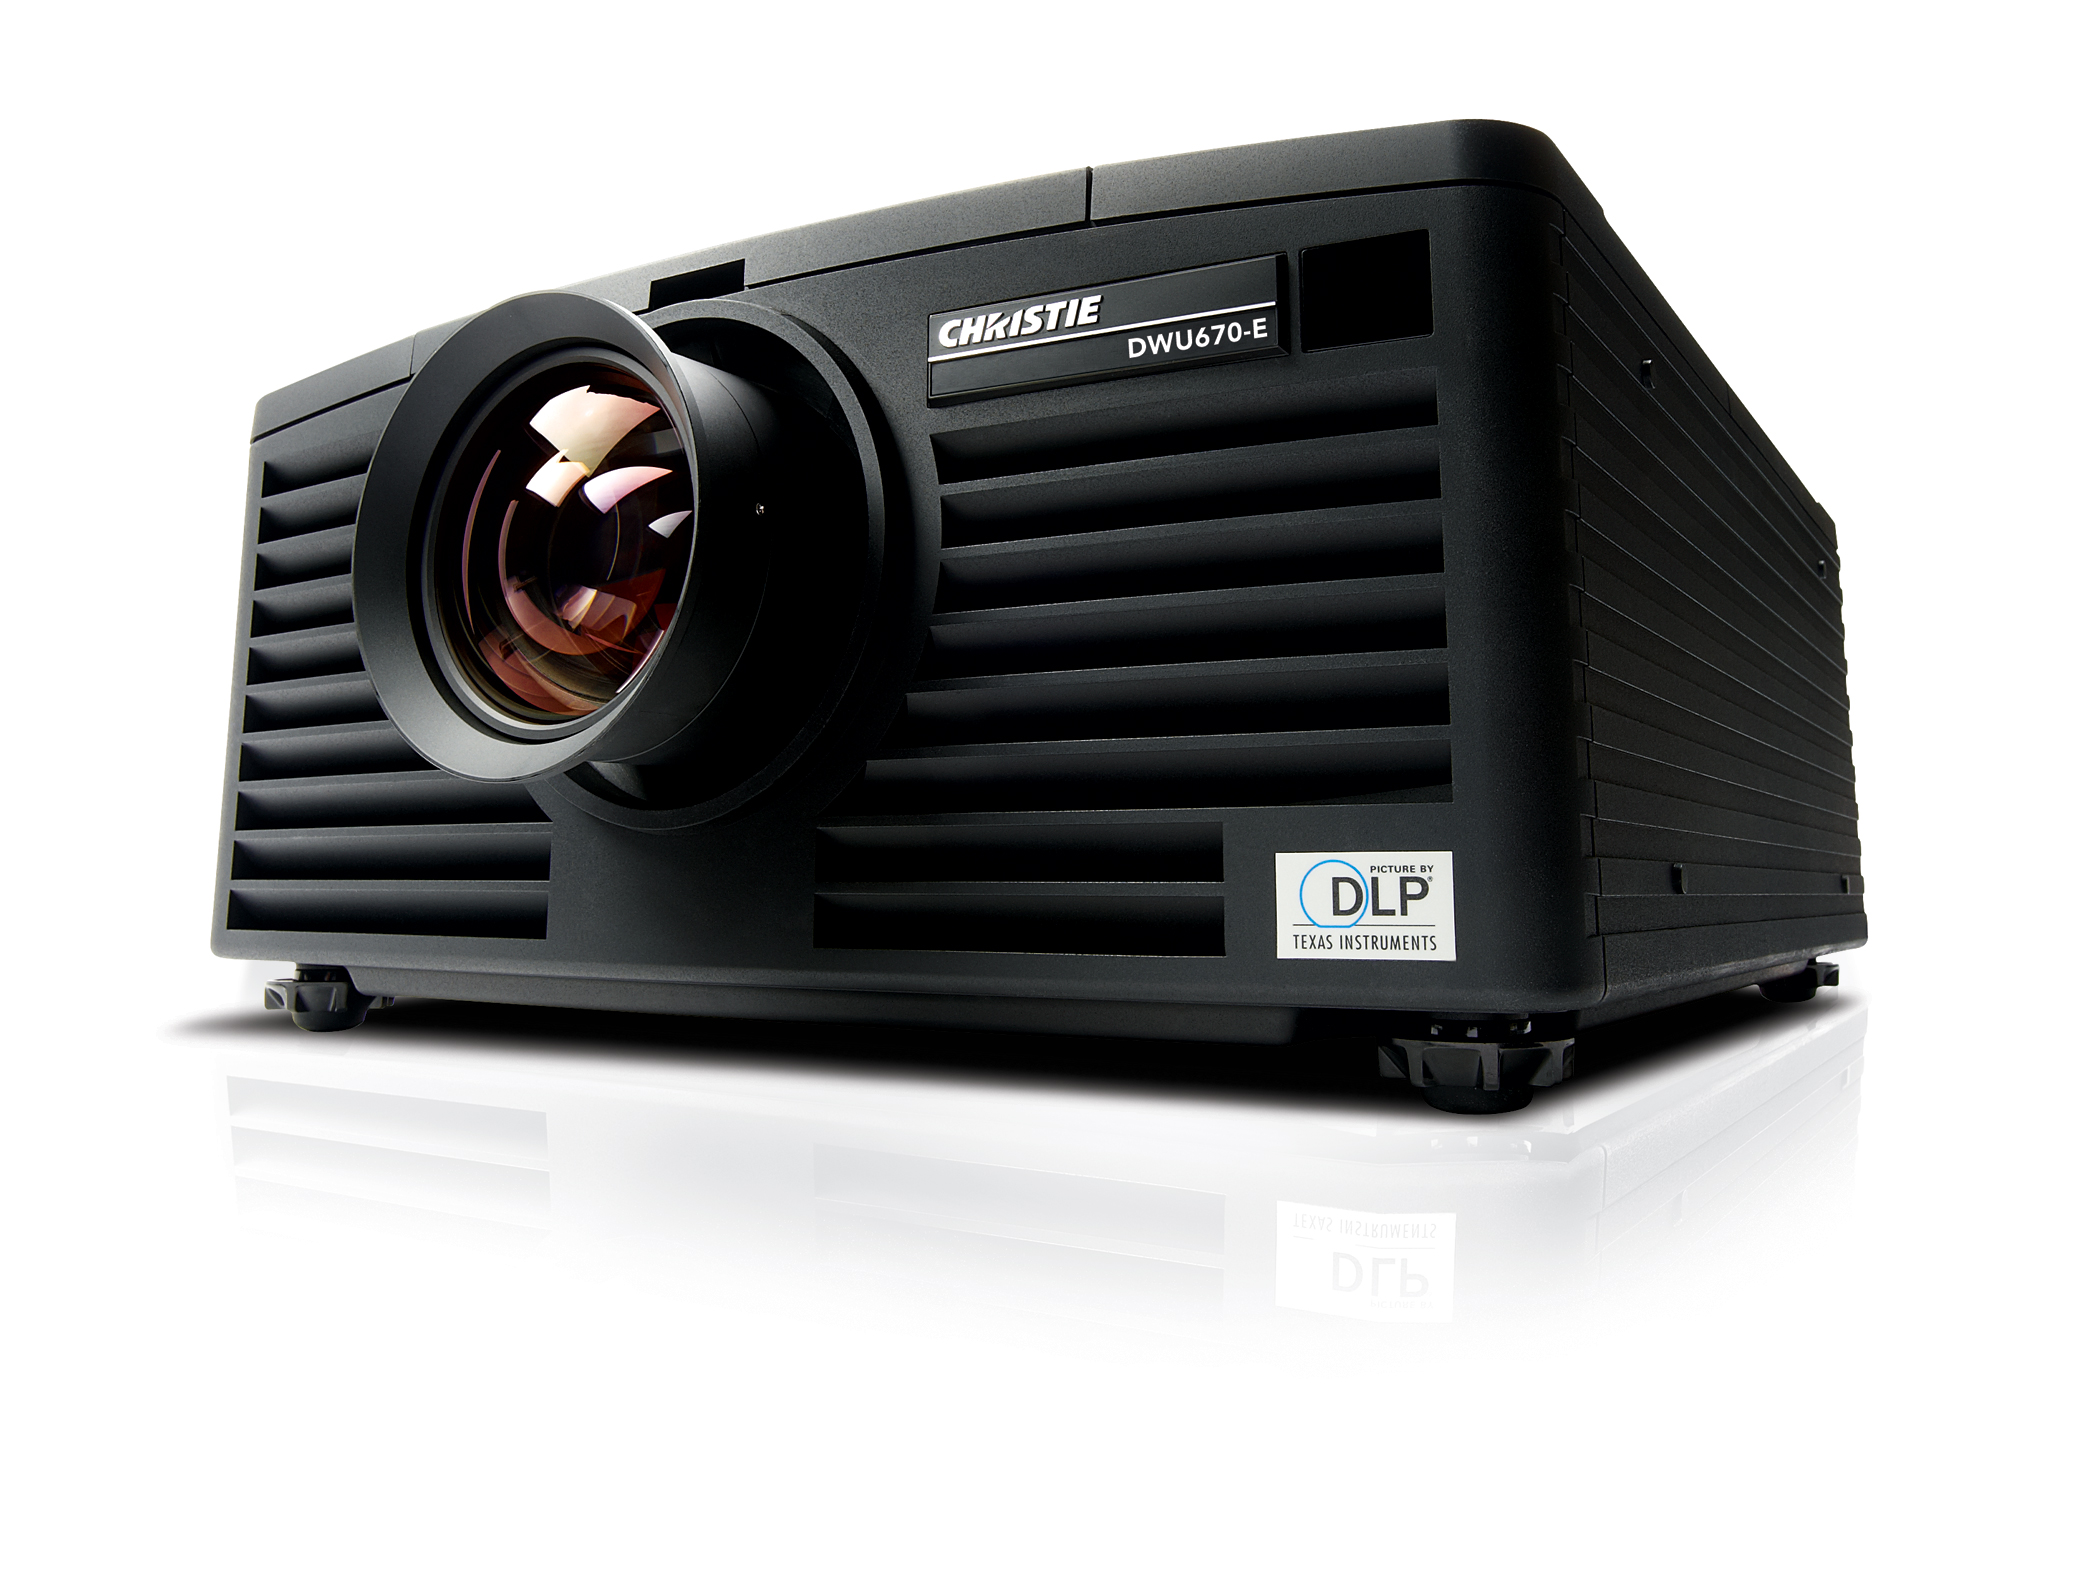 /globalassets/.catalog/products/images/christie-dwu670-e/gallery/christie-dwu670-e-dlp-digital-projector-low-right.jpg